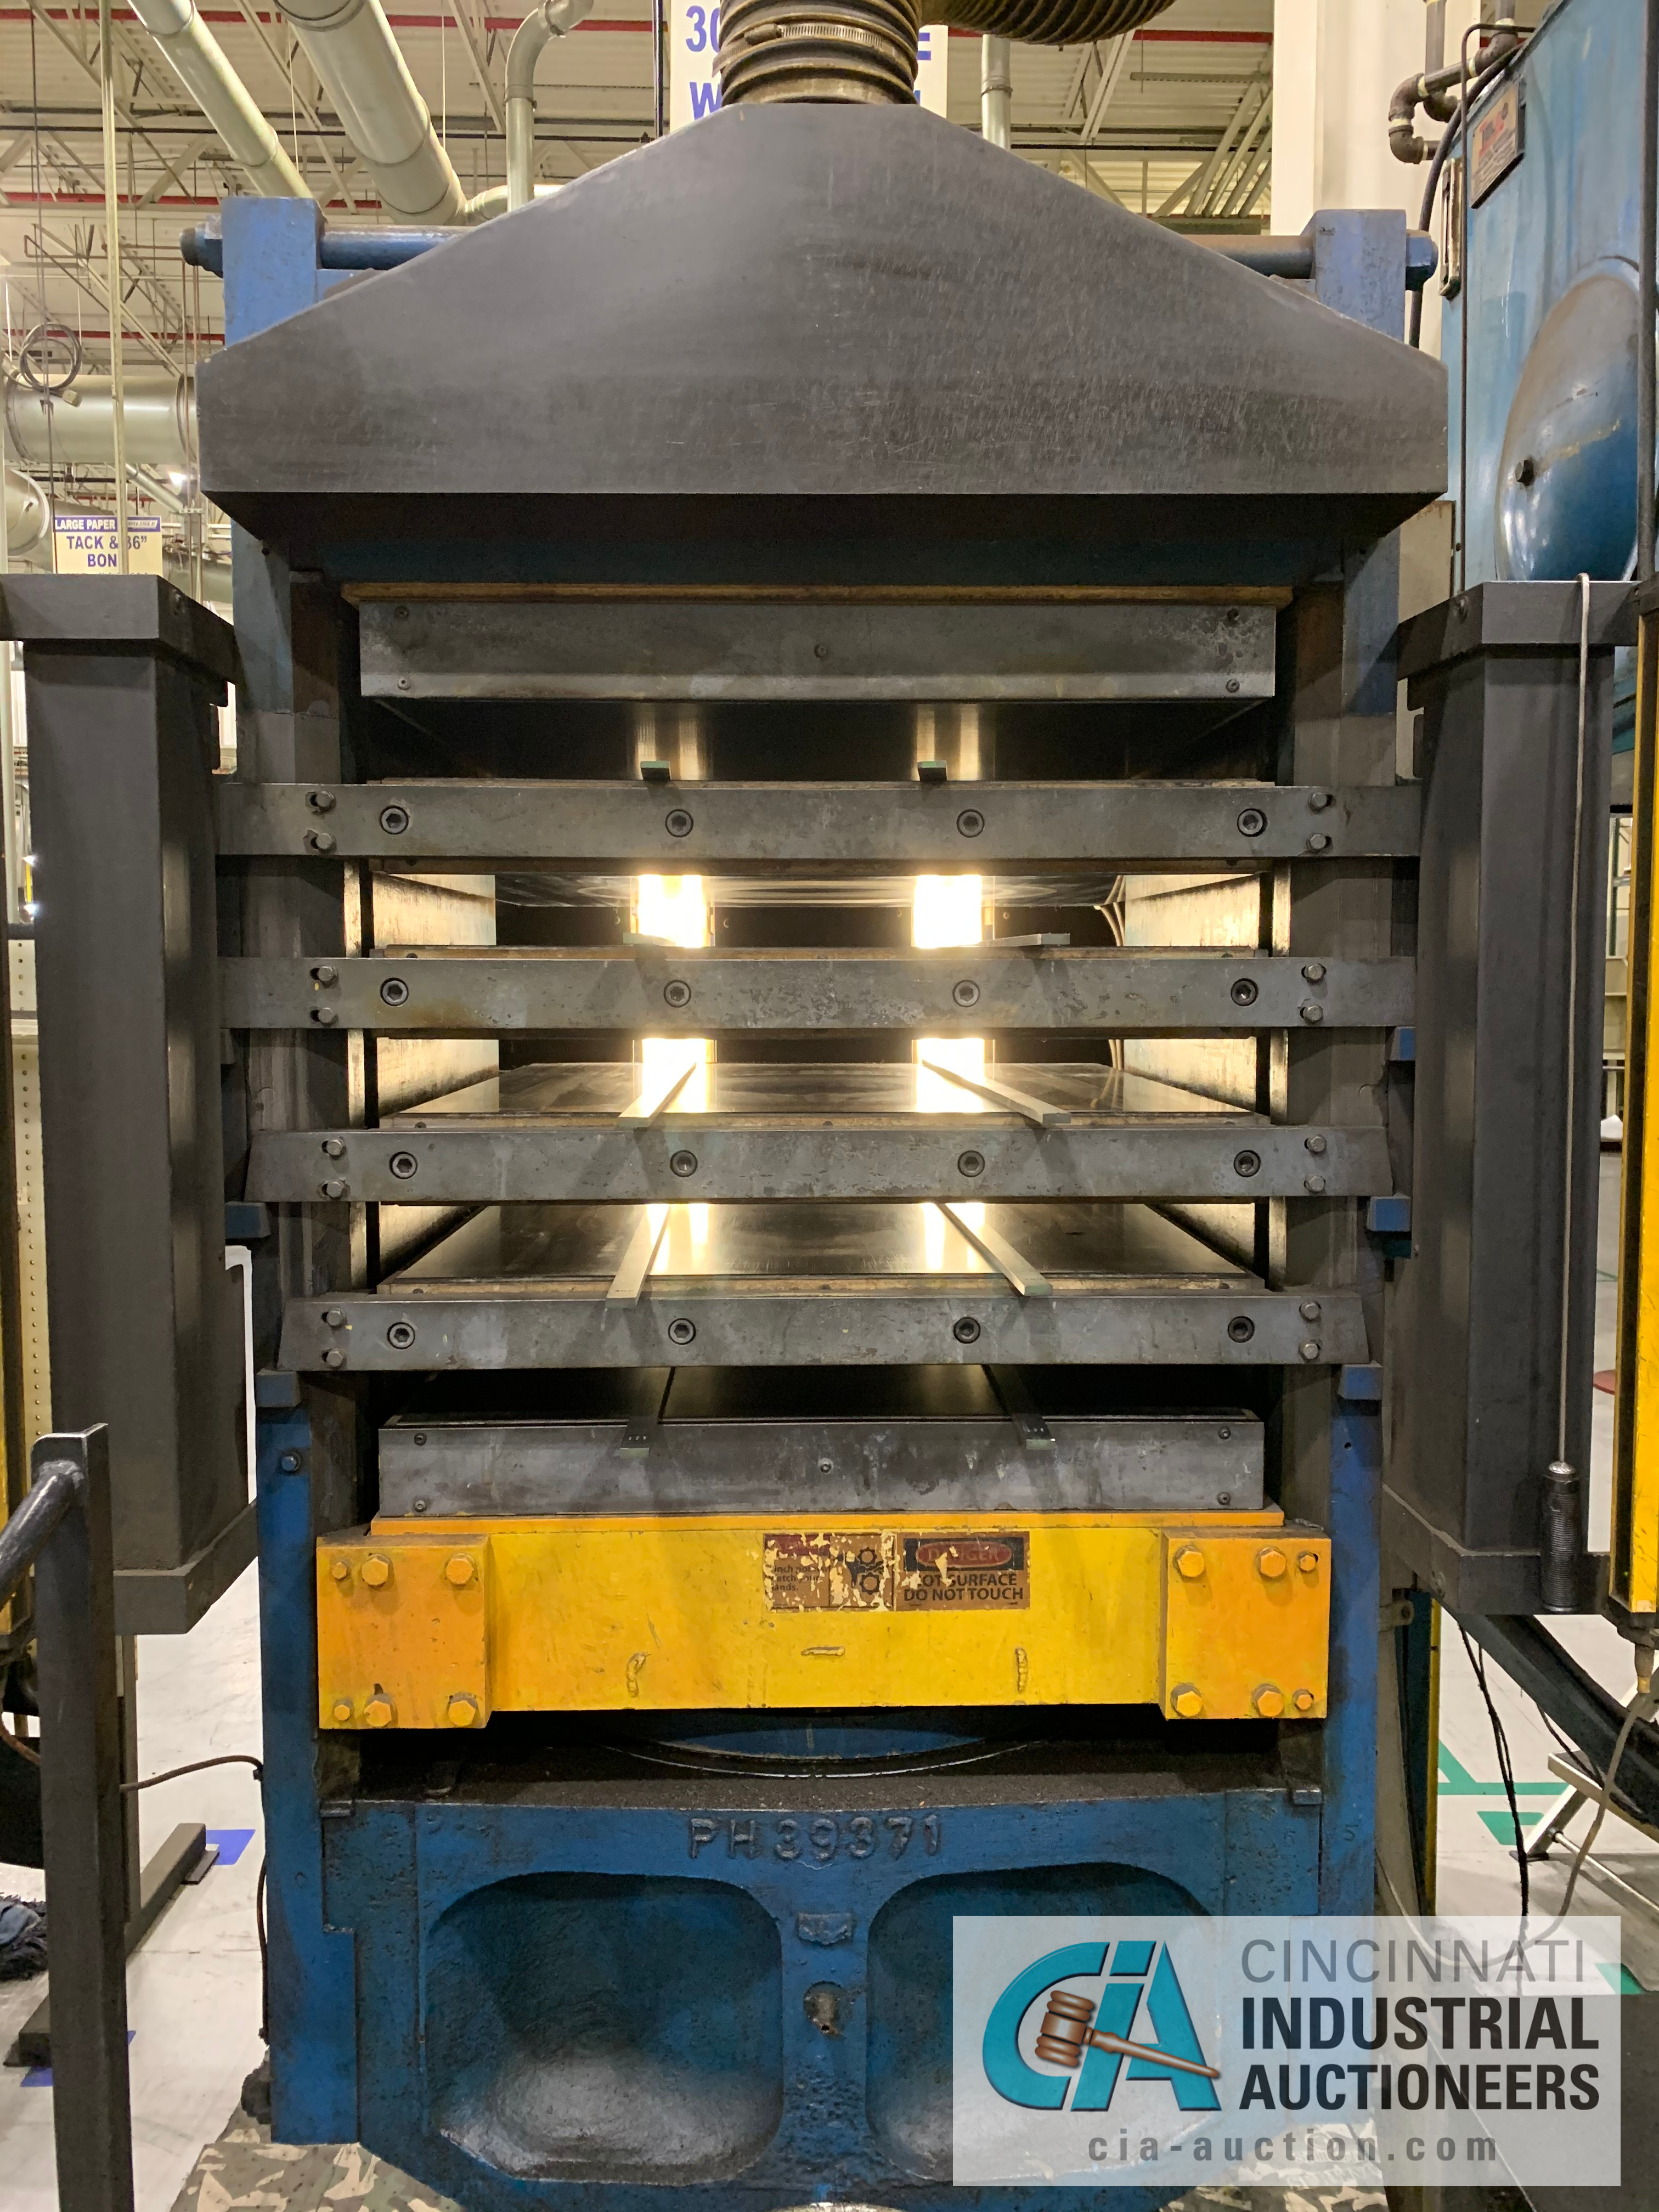 """32"""" 5-PLATTEN HEATED PRESS **RIGGING FEE DUE TO SHOEMAKER $2,250.00** - Image 2 of 7"""